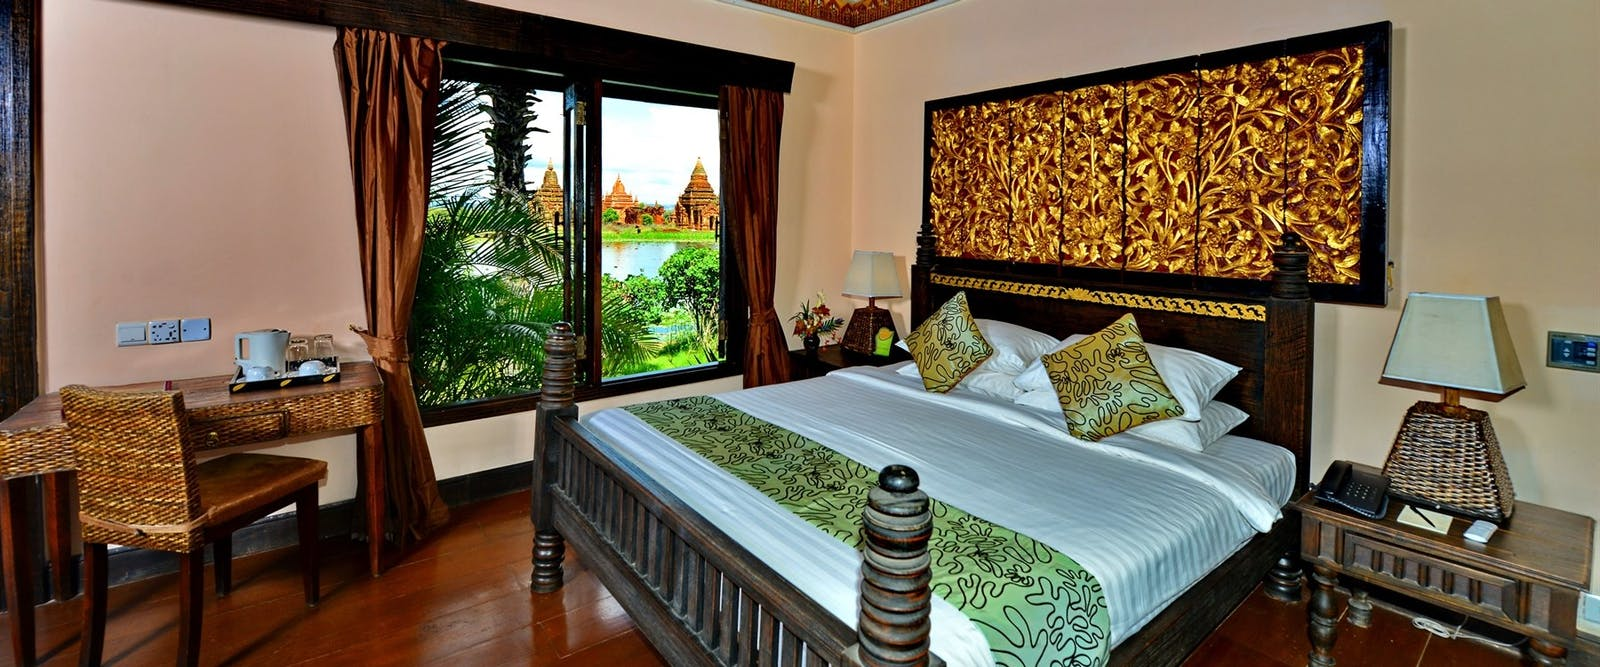 Jasmine villa bedroom at Aureum Palace Hotel Bagan